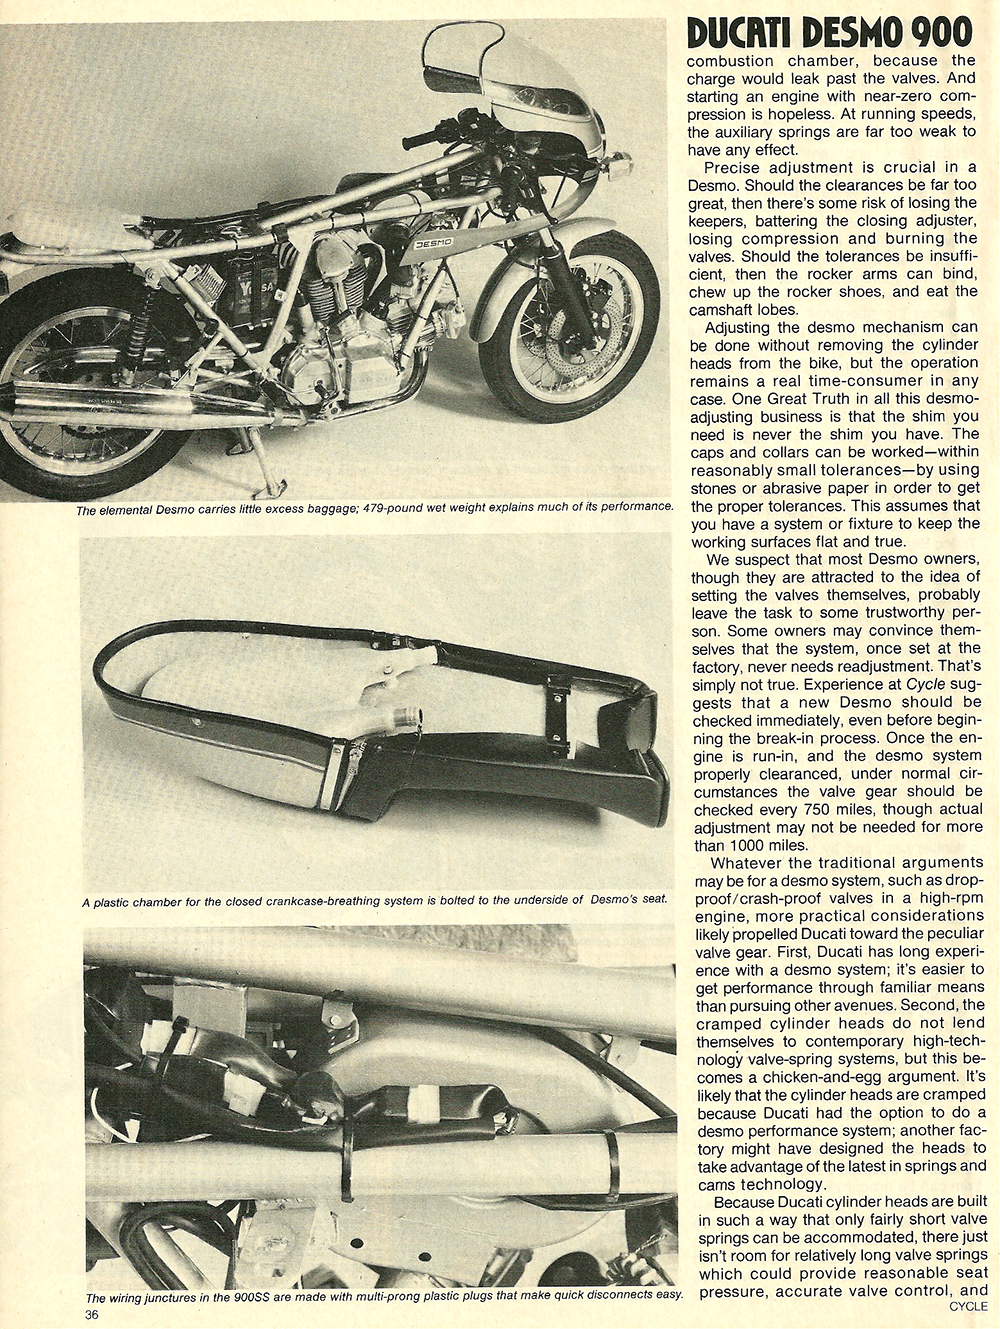 1978 Ducati Desmo 900 Super Sport road test 05.jpg